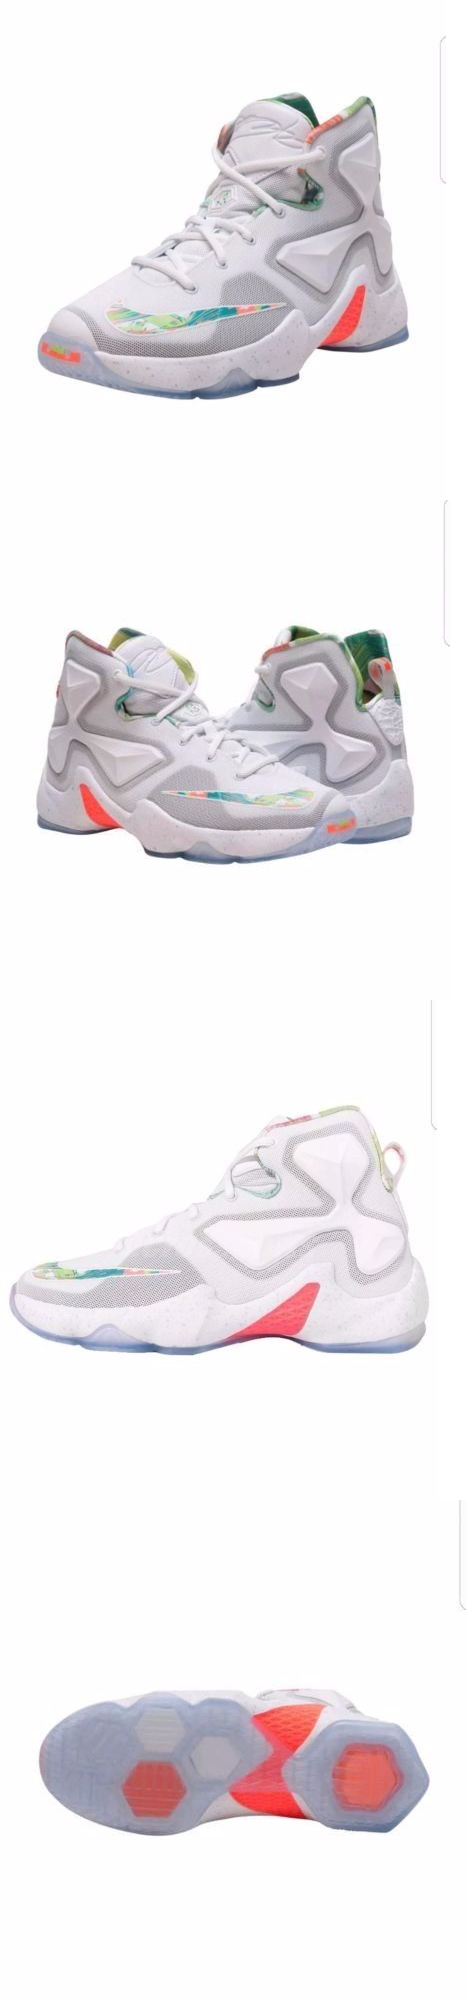 be8fa8b22571 Boys Shoes 57929  Nike Lebron Xiii 13 (Gs) Easter Lebron James Size 5 Youth  808709-108 Brand New -  BUY IT NOW ONLY   65.99 on eBay!